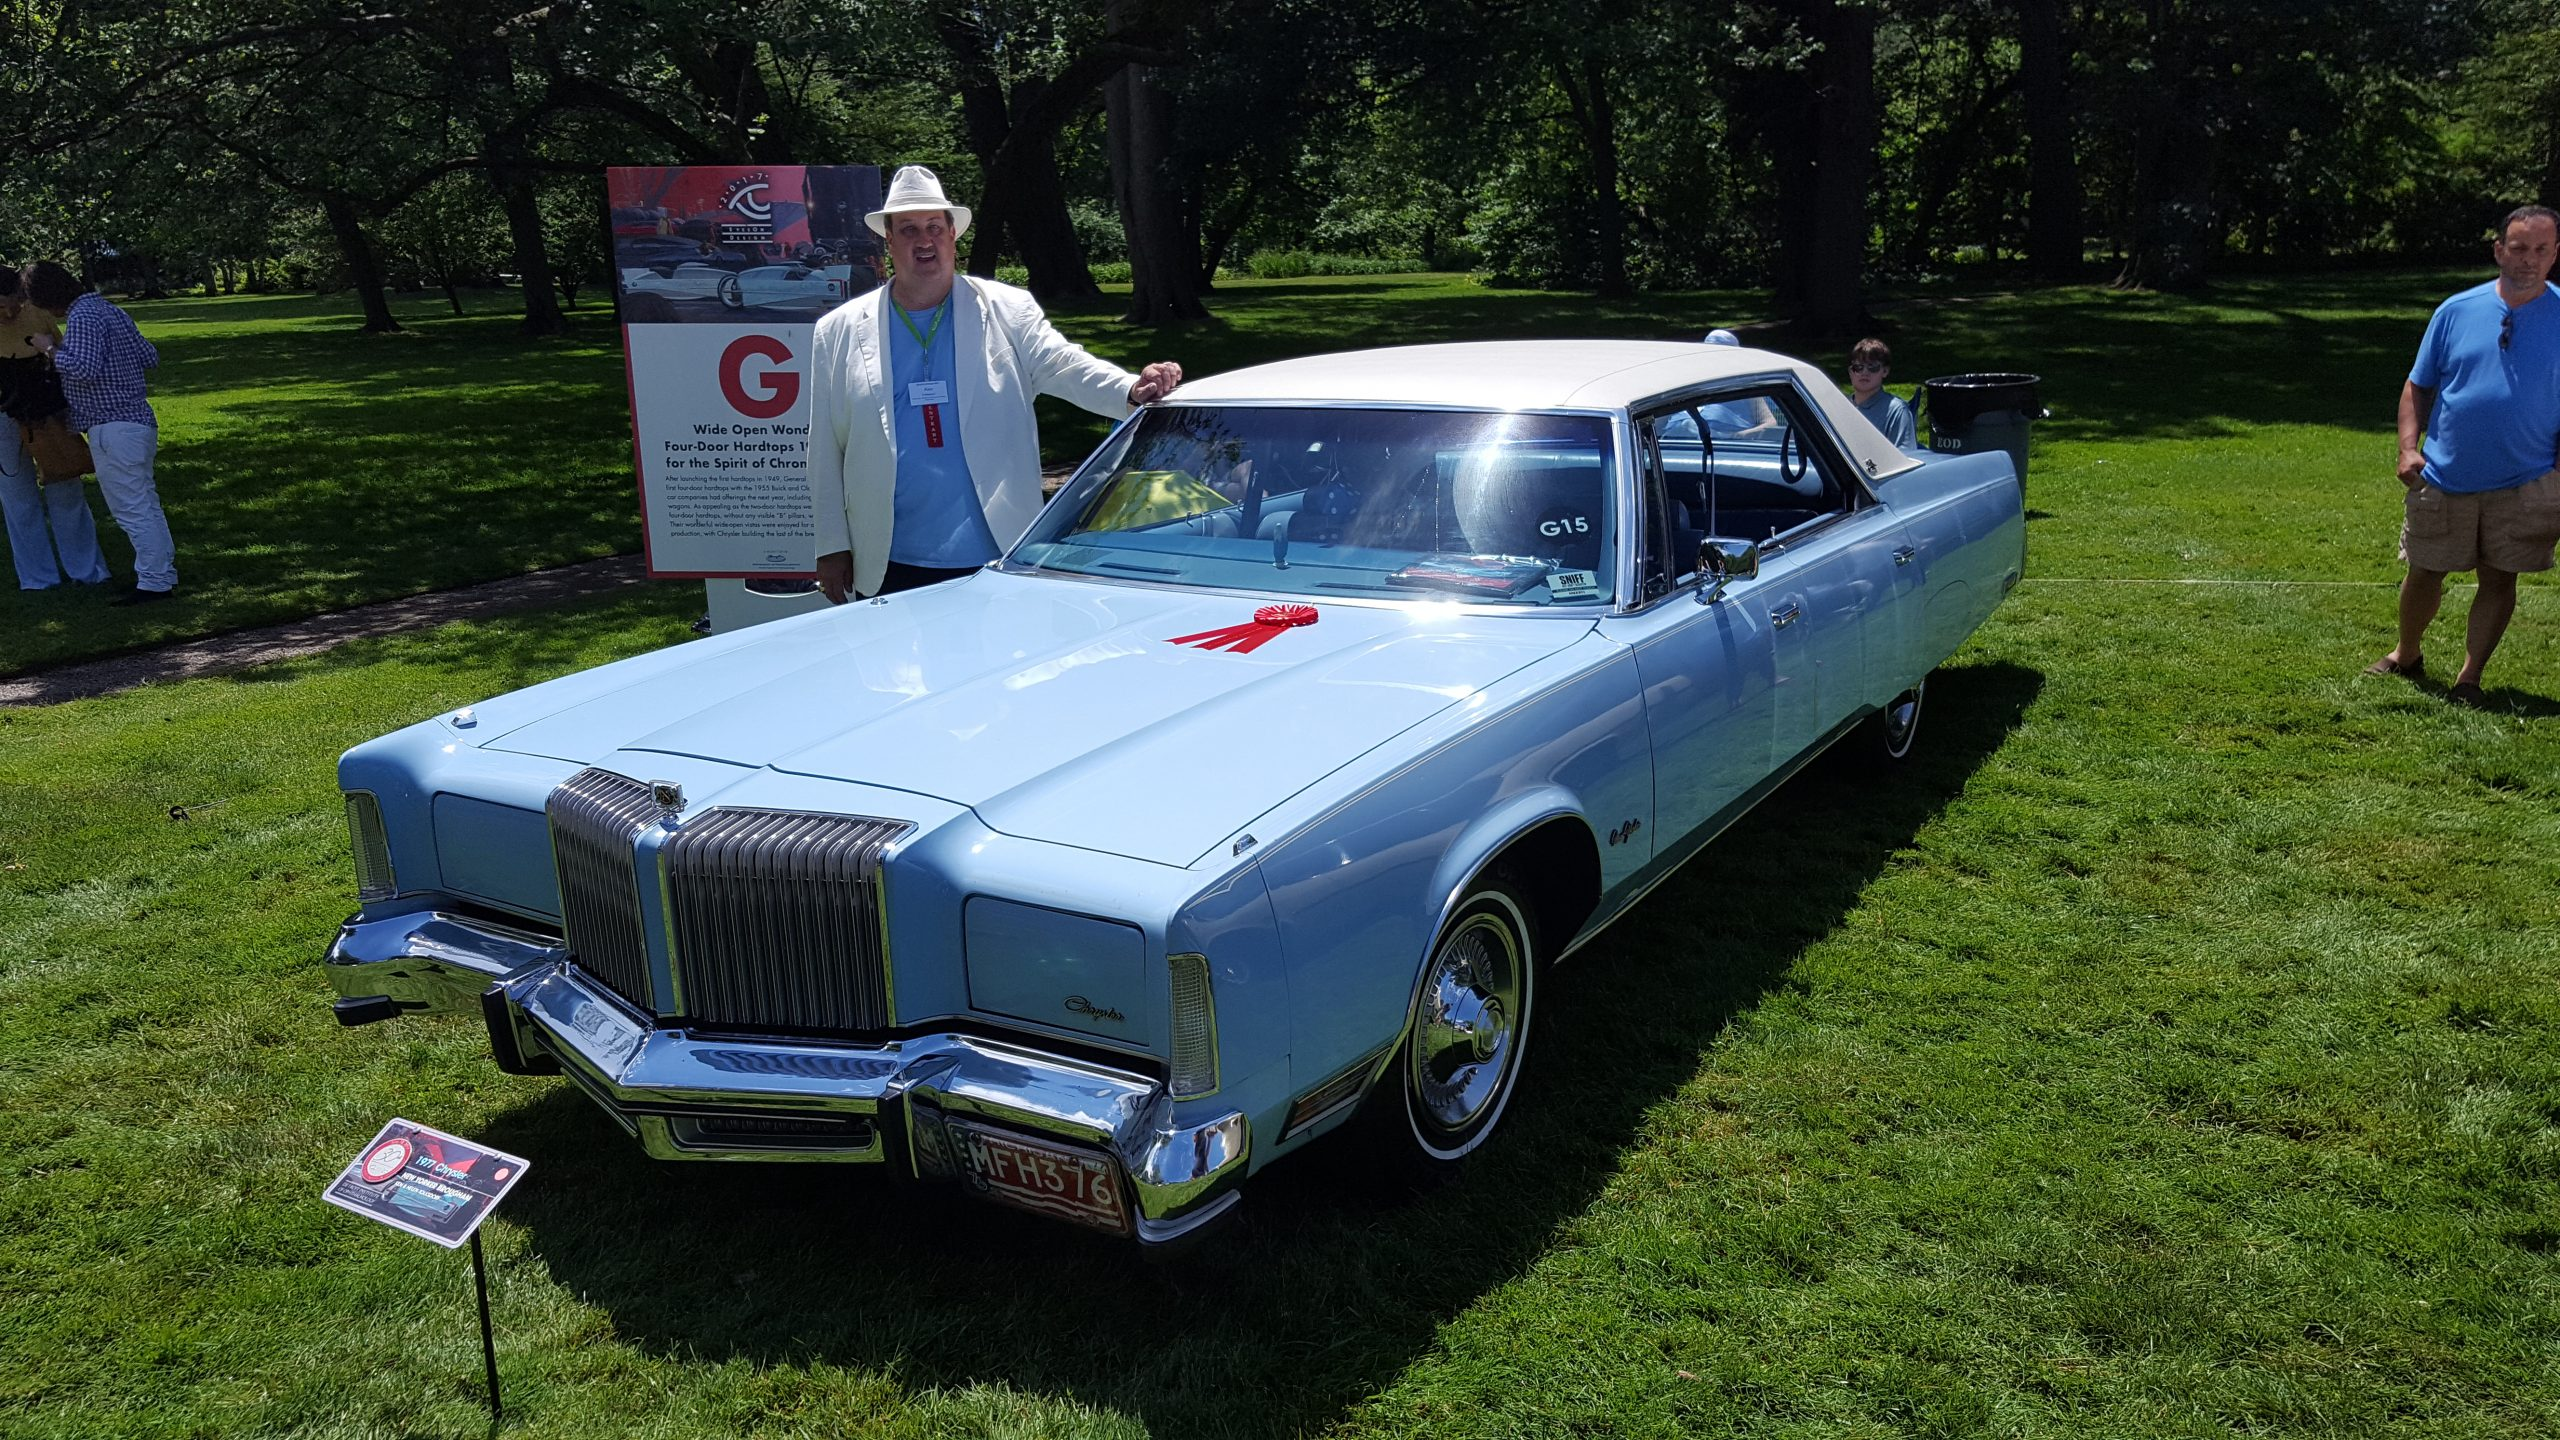 1977 Chrysler New Yorker Brougham 4 door hardtop